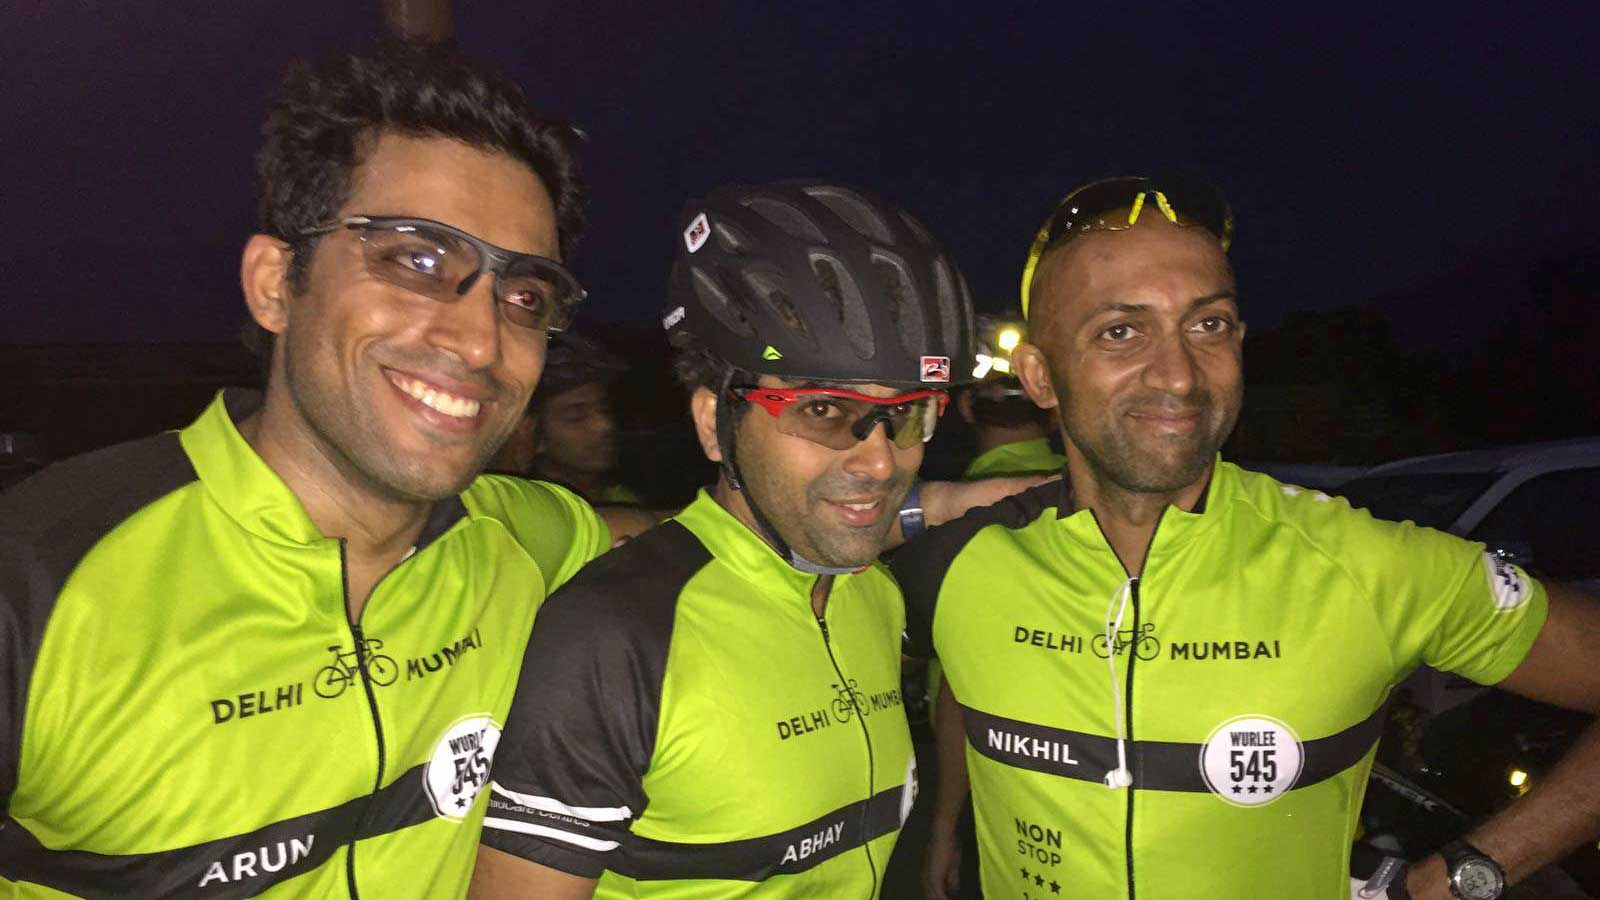 Nikhil Raghavan of Bain Capital's Mumbai office participating in 1,500 kilometer non-stop bike relay to support St. Jude Children's Research Hospital